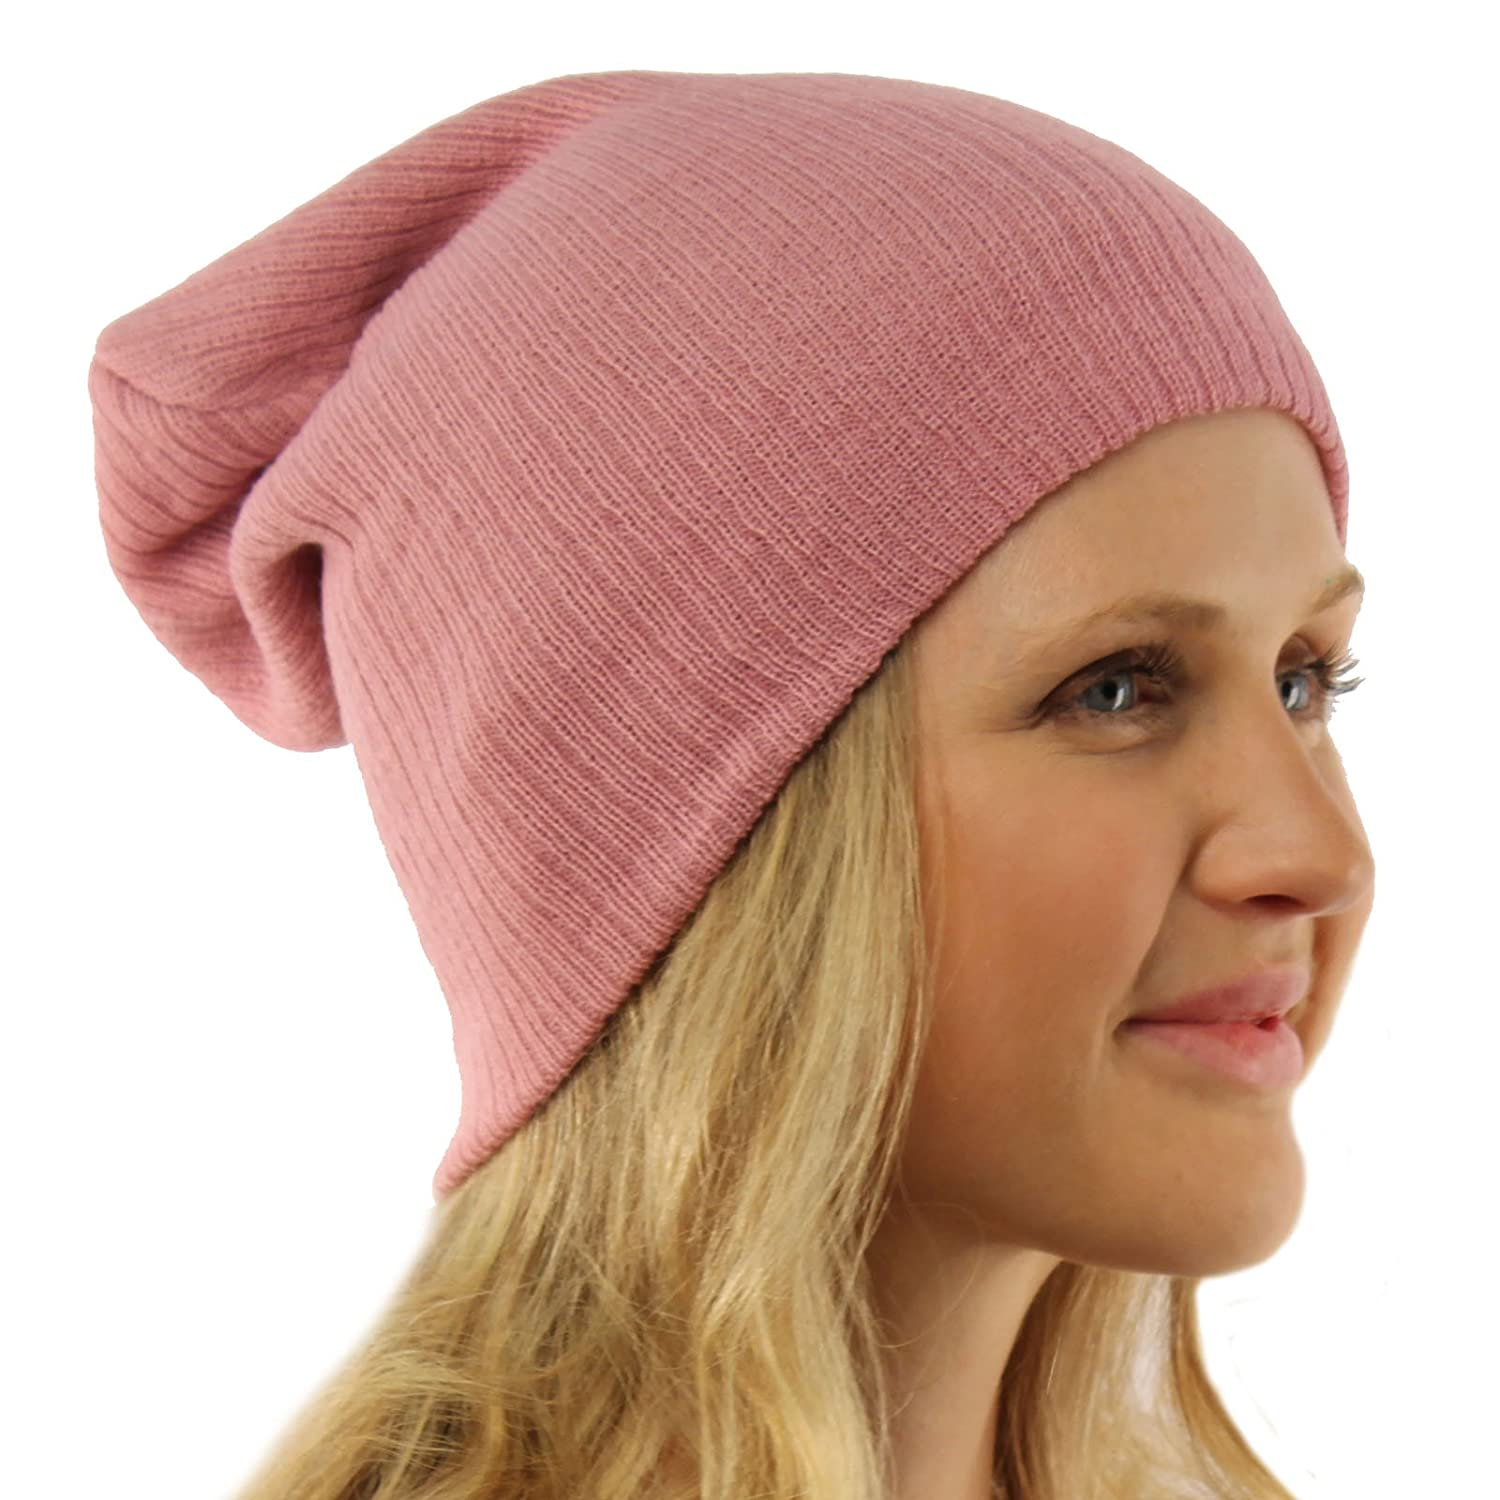 Unisex Soft Ribbed Long Beanie Slouchy Knit Hat Cap